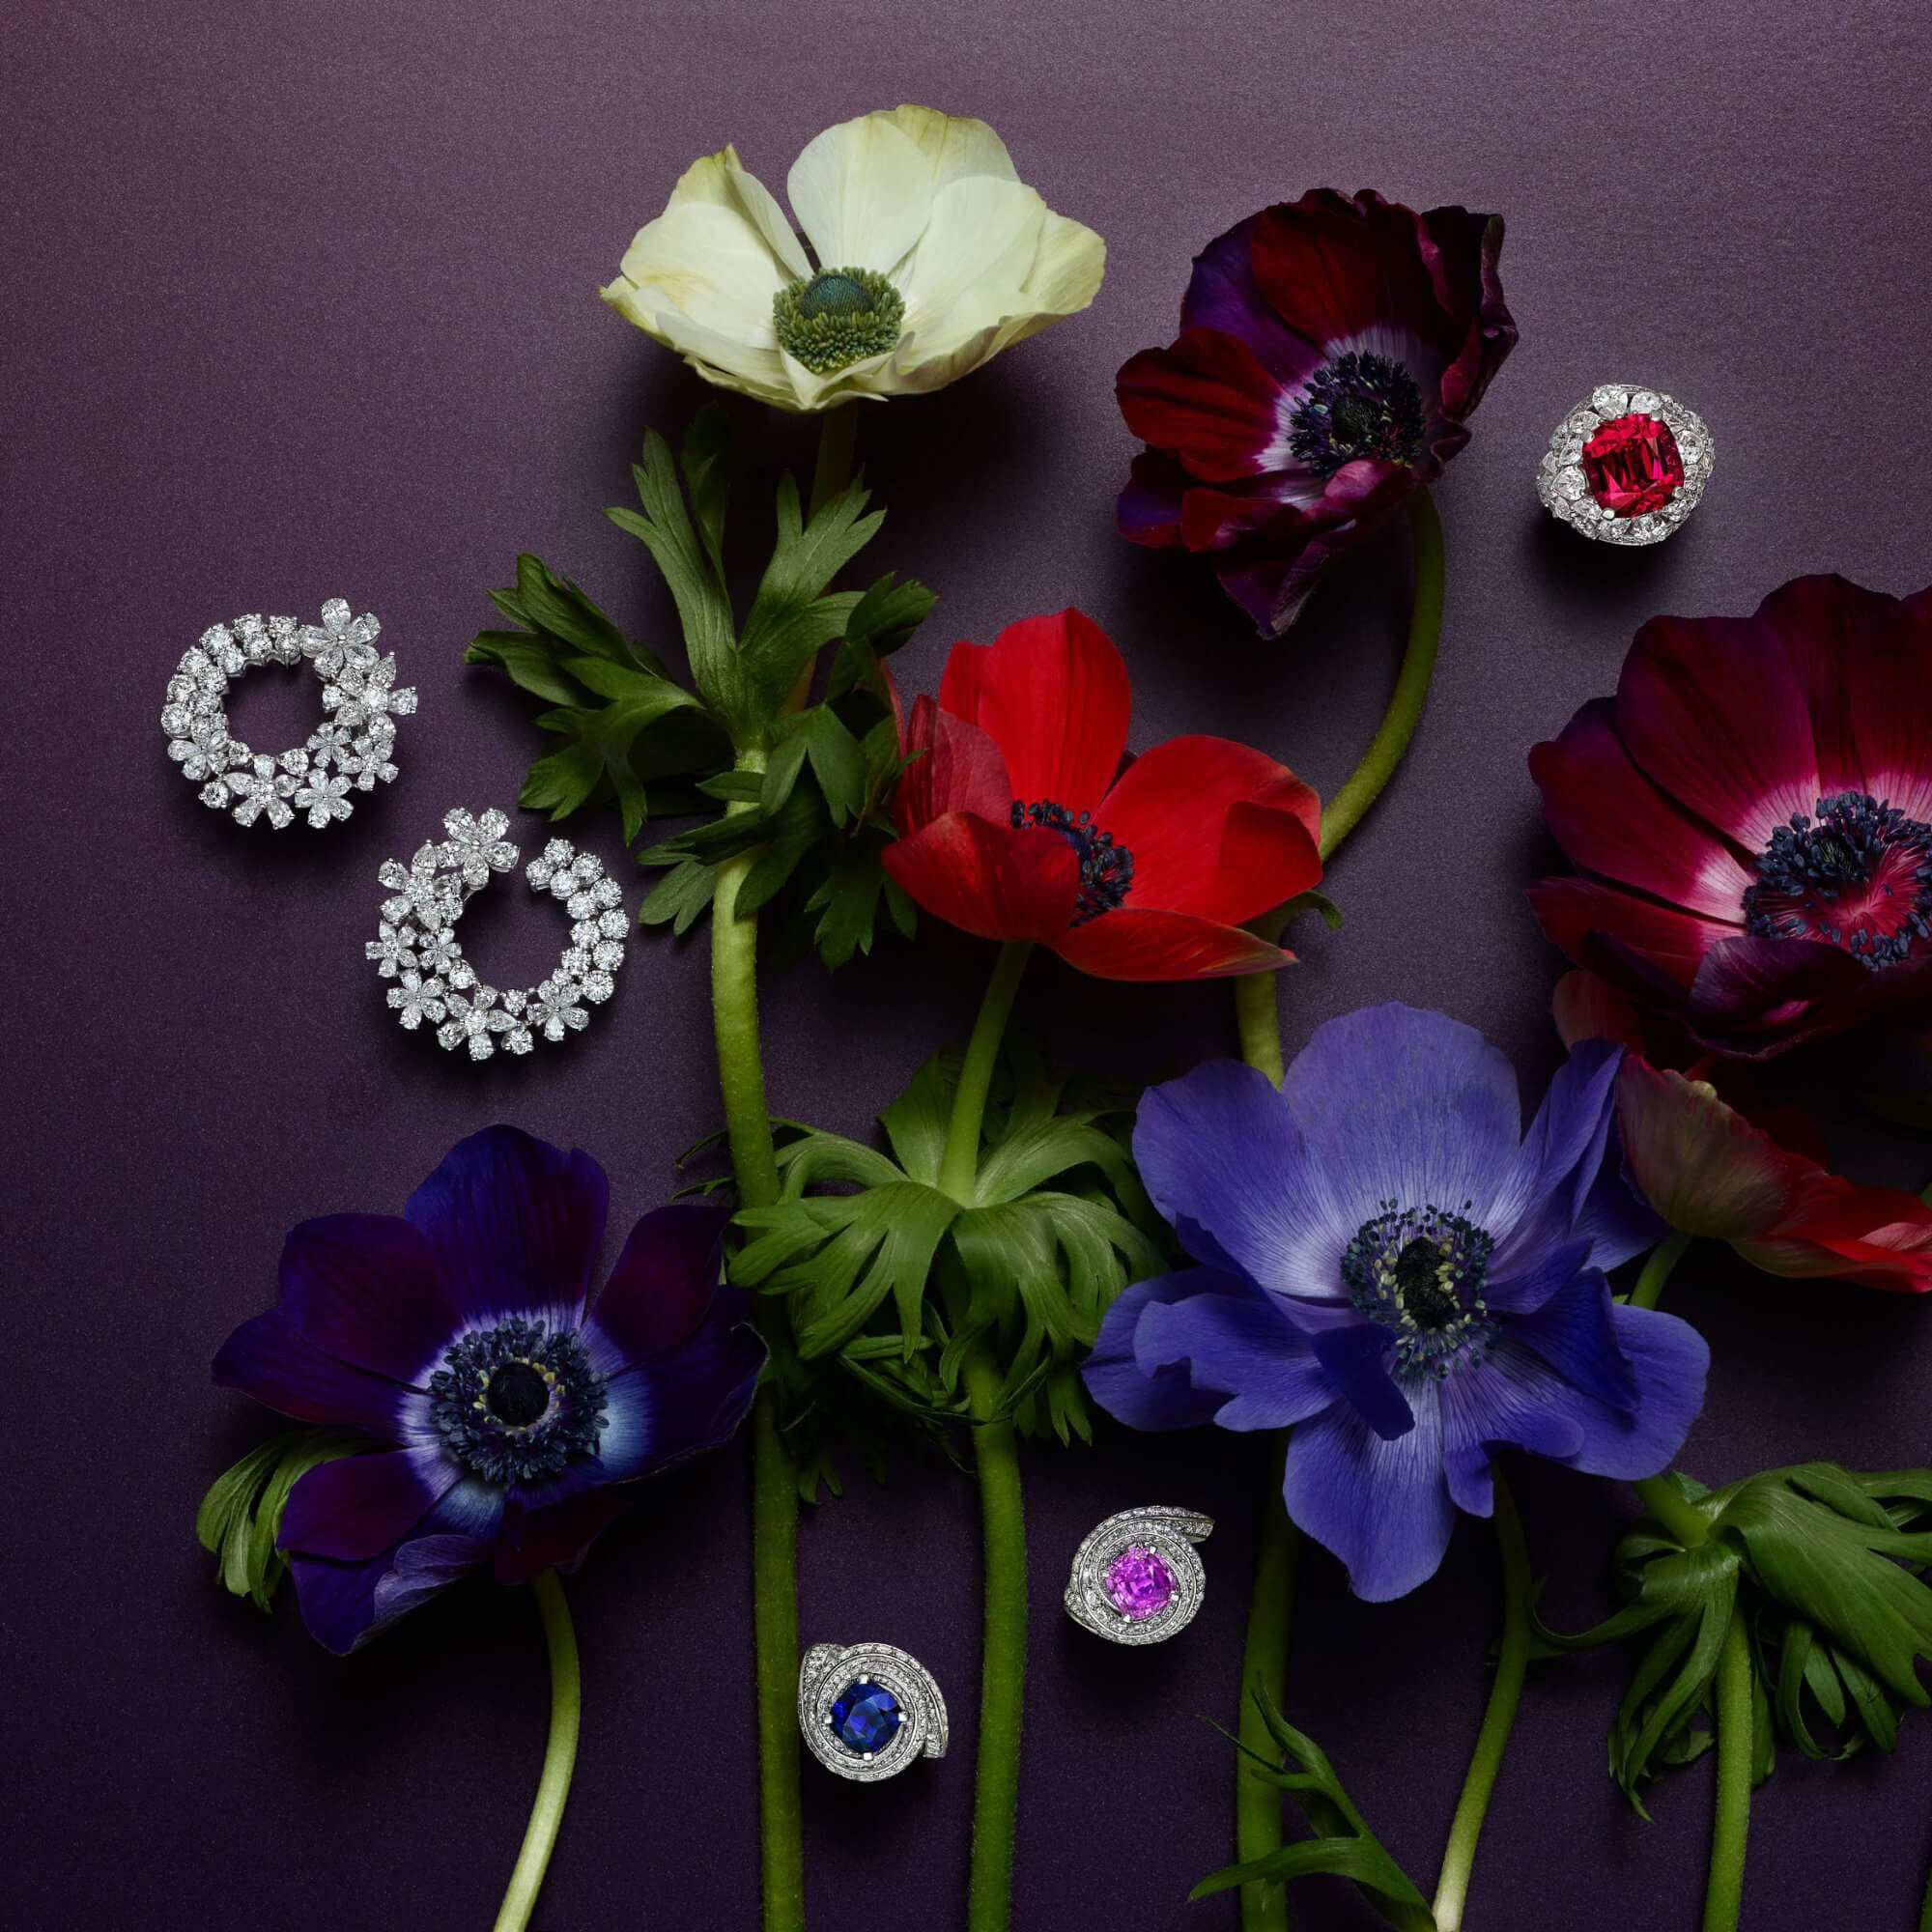 Graff coloured gemstones and diamond jewellery with flowers decorations